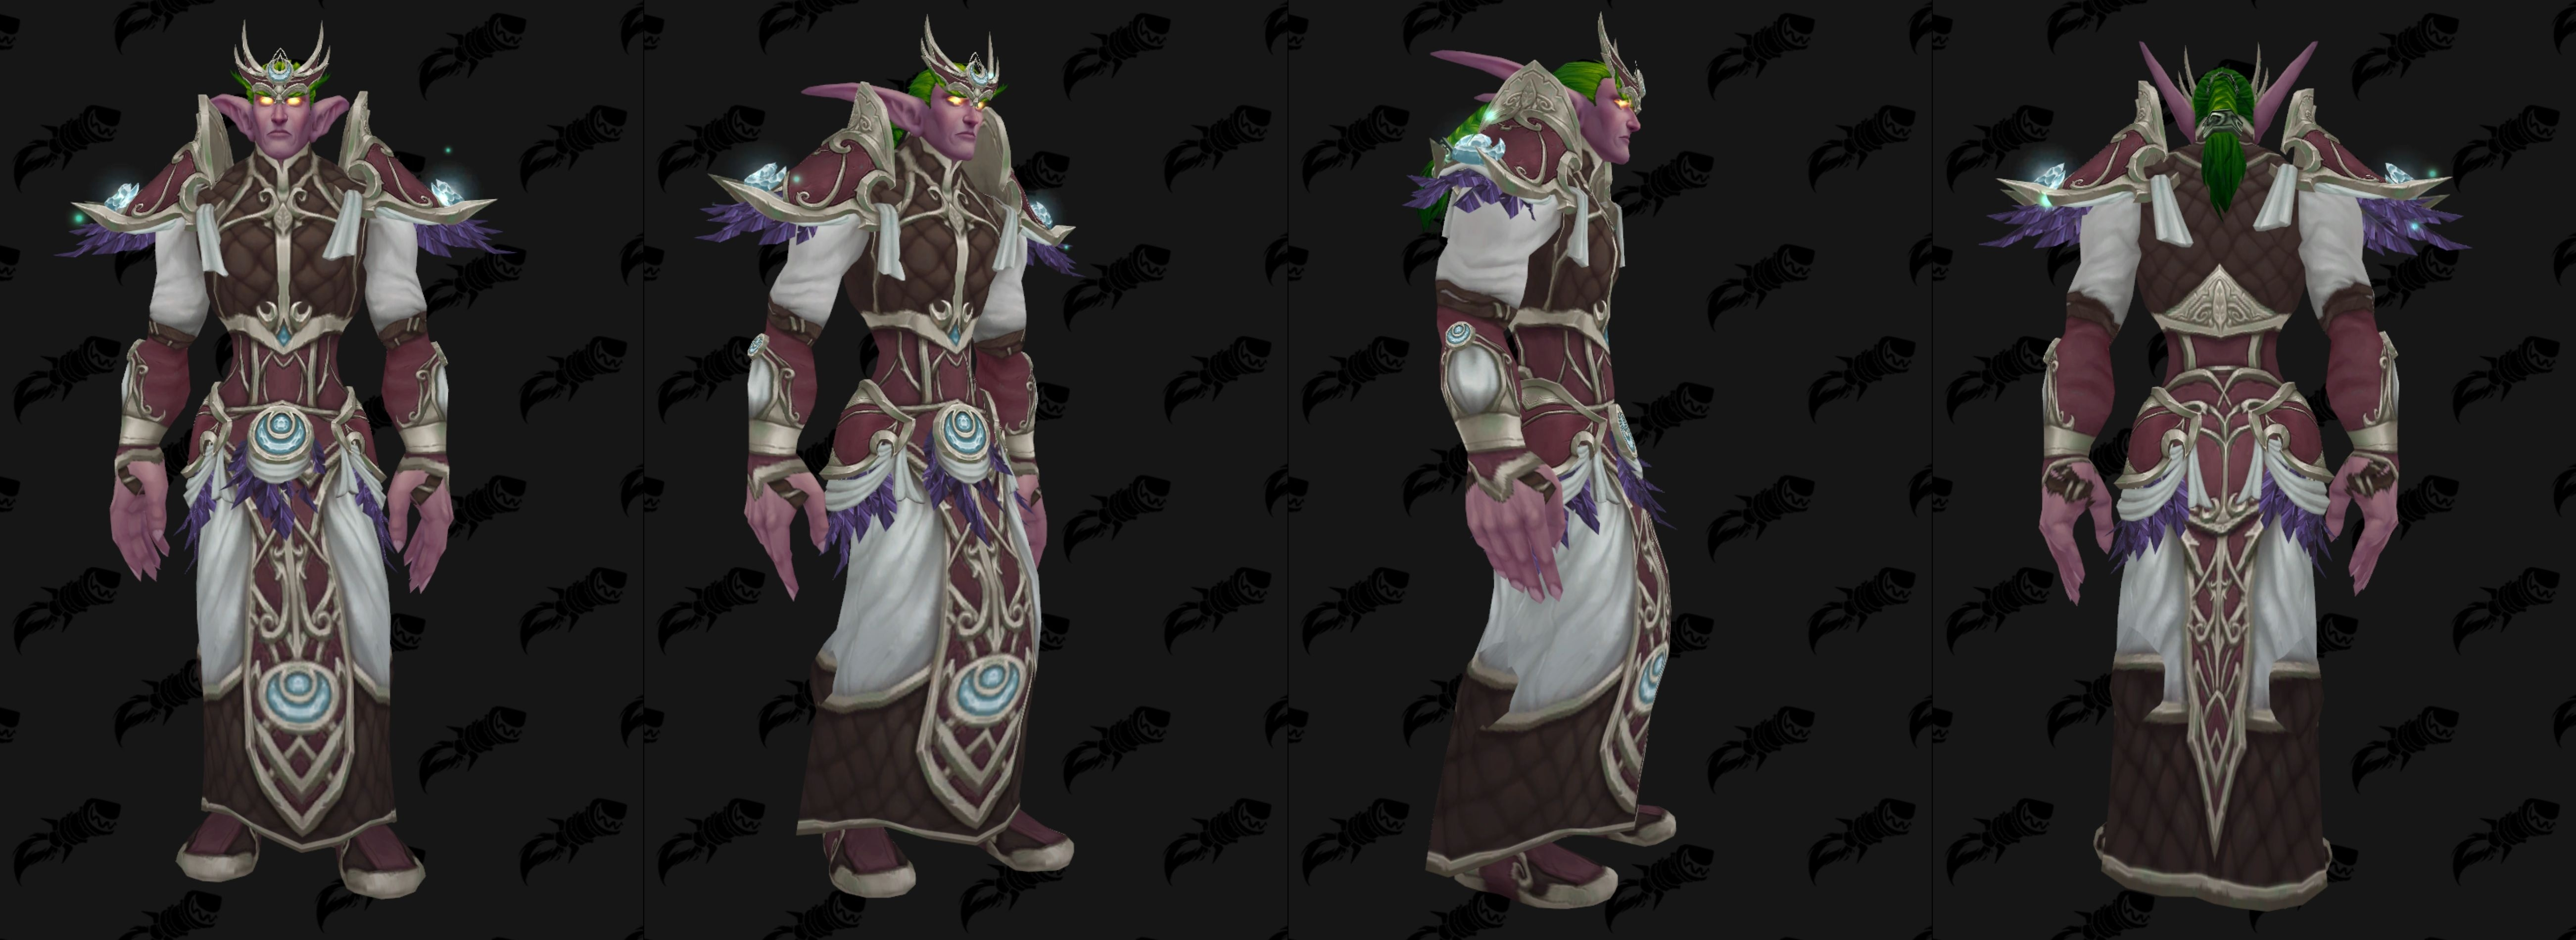 Priestess Moonsaber Patch 81 Mount Preview Wowhead News